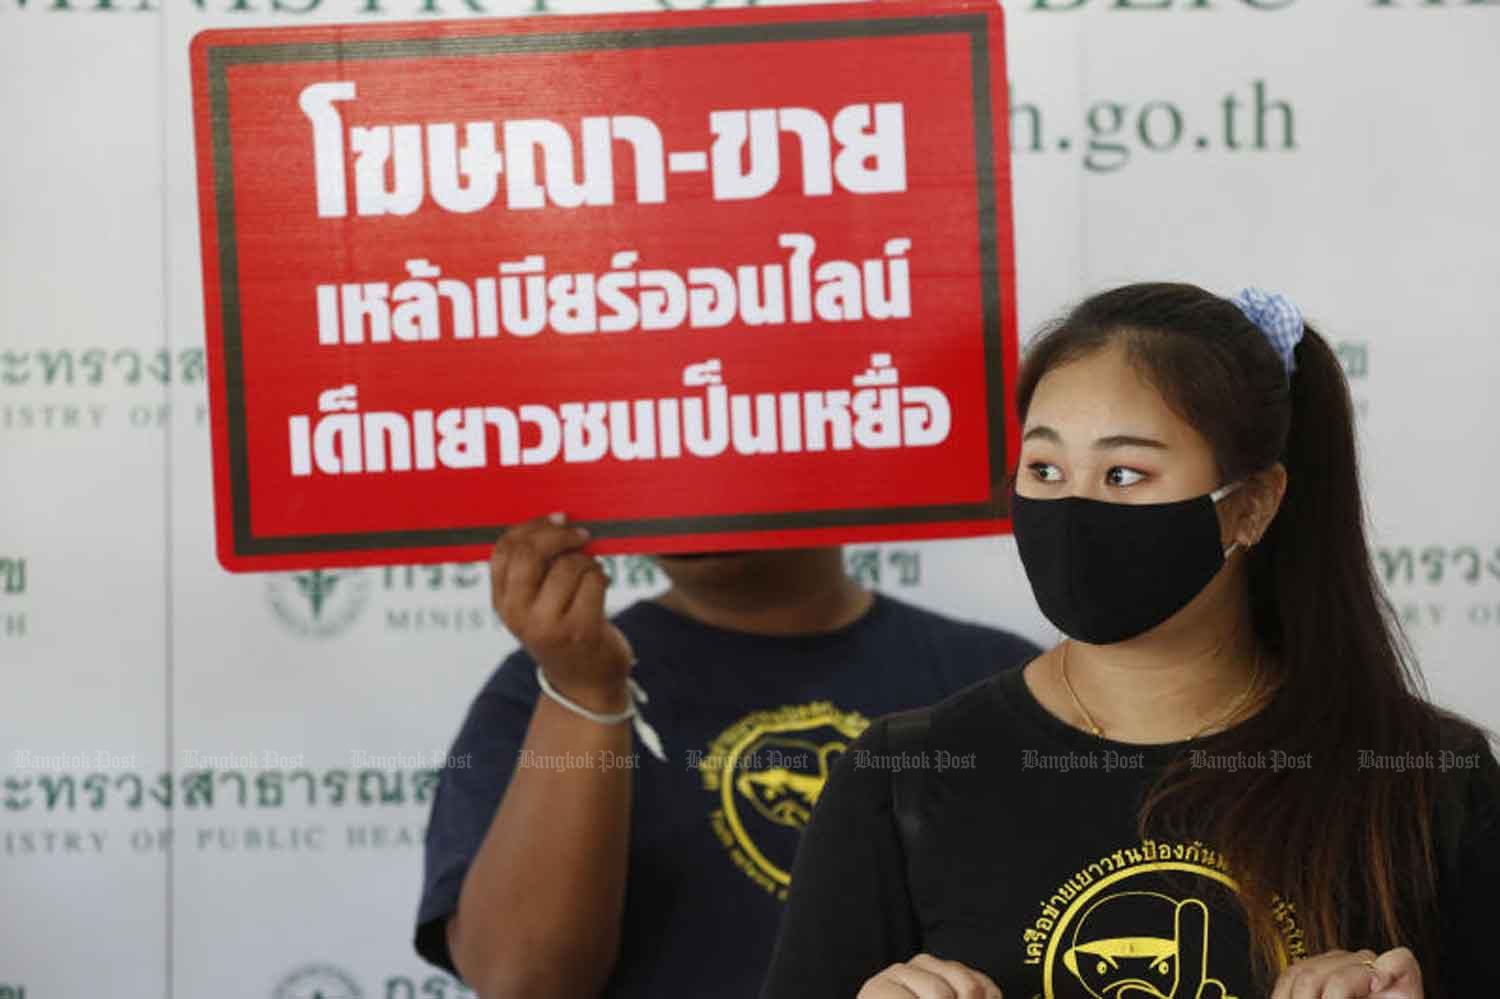 Members of Alcohol Watch gather at the Public Health Ministry in Nonthaburi province in June, demanding a ban on online sales of alcoholic beverages. They argued there was no guarantee that individuals ordering the booze were not minors. (Photo: Pornprom Satrabhaya)